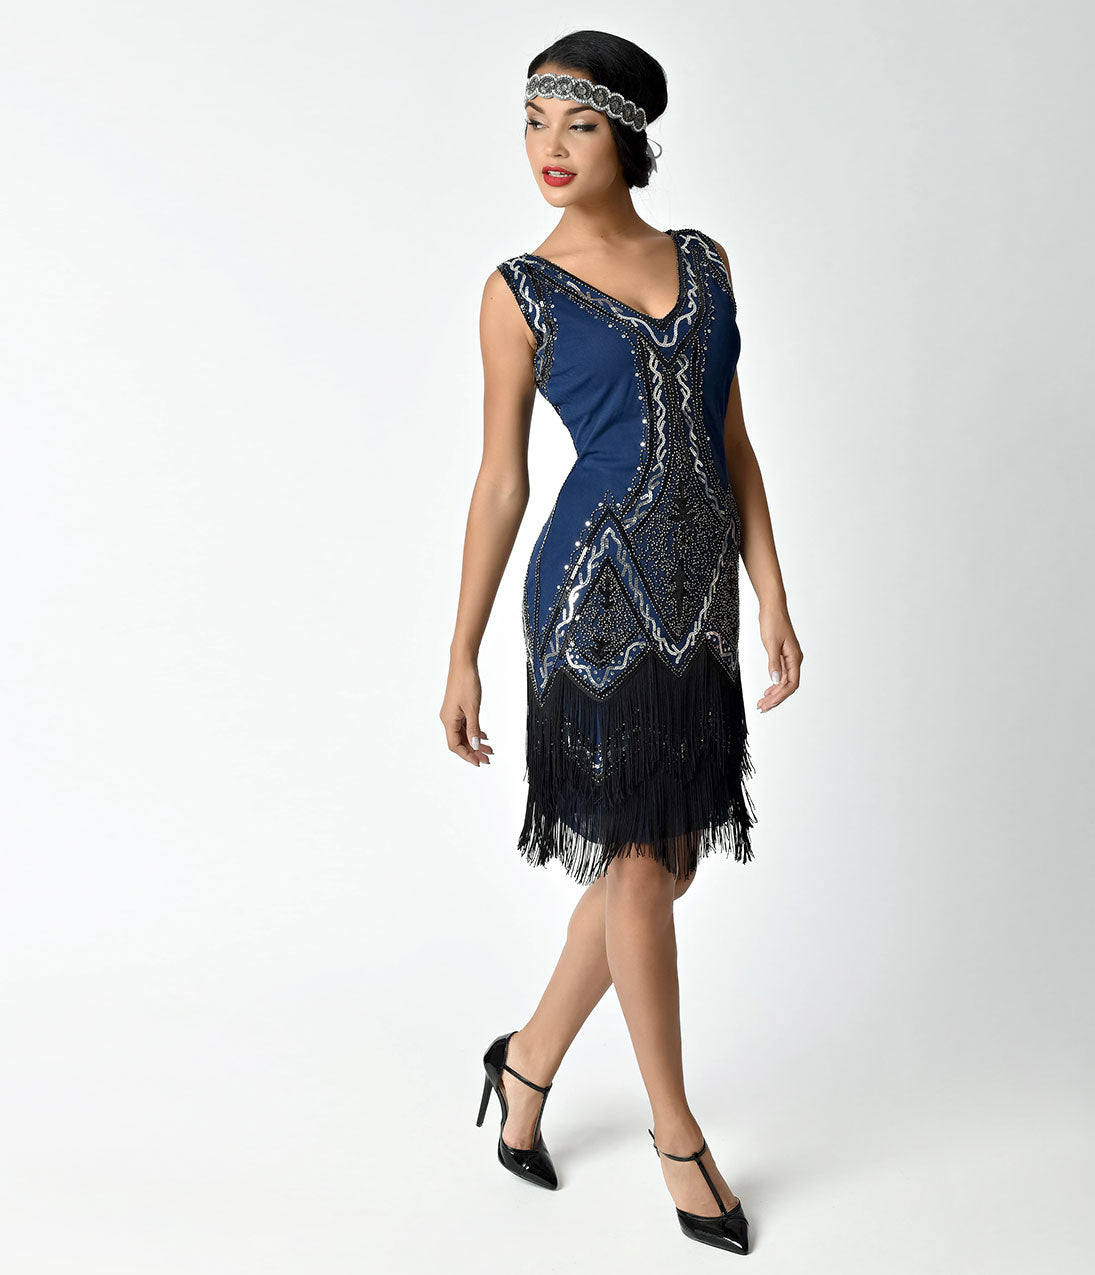 Roaring 20s Costumes- Flapper Costumes, Gangster Costumes Unique Vintage 1920S Style Navy Blue Beaded Sylvie Flapper Dress $74.00 AT vintagedancer.com